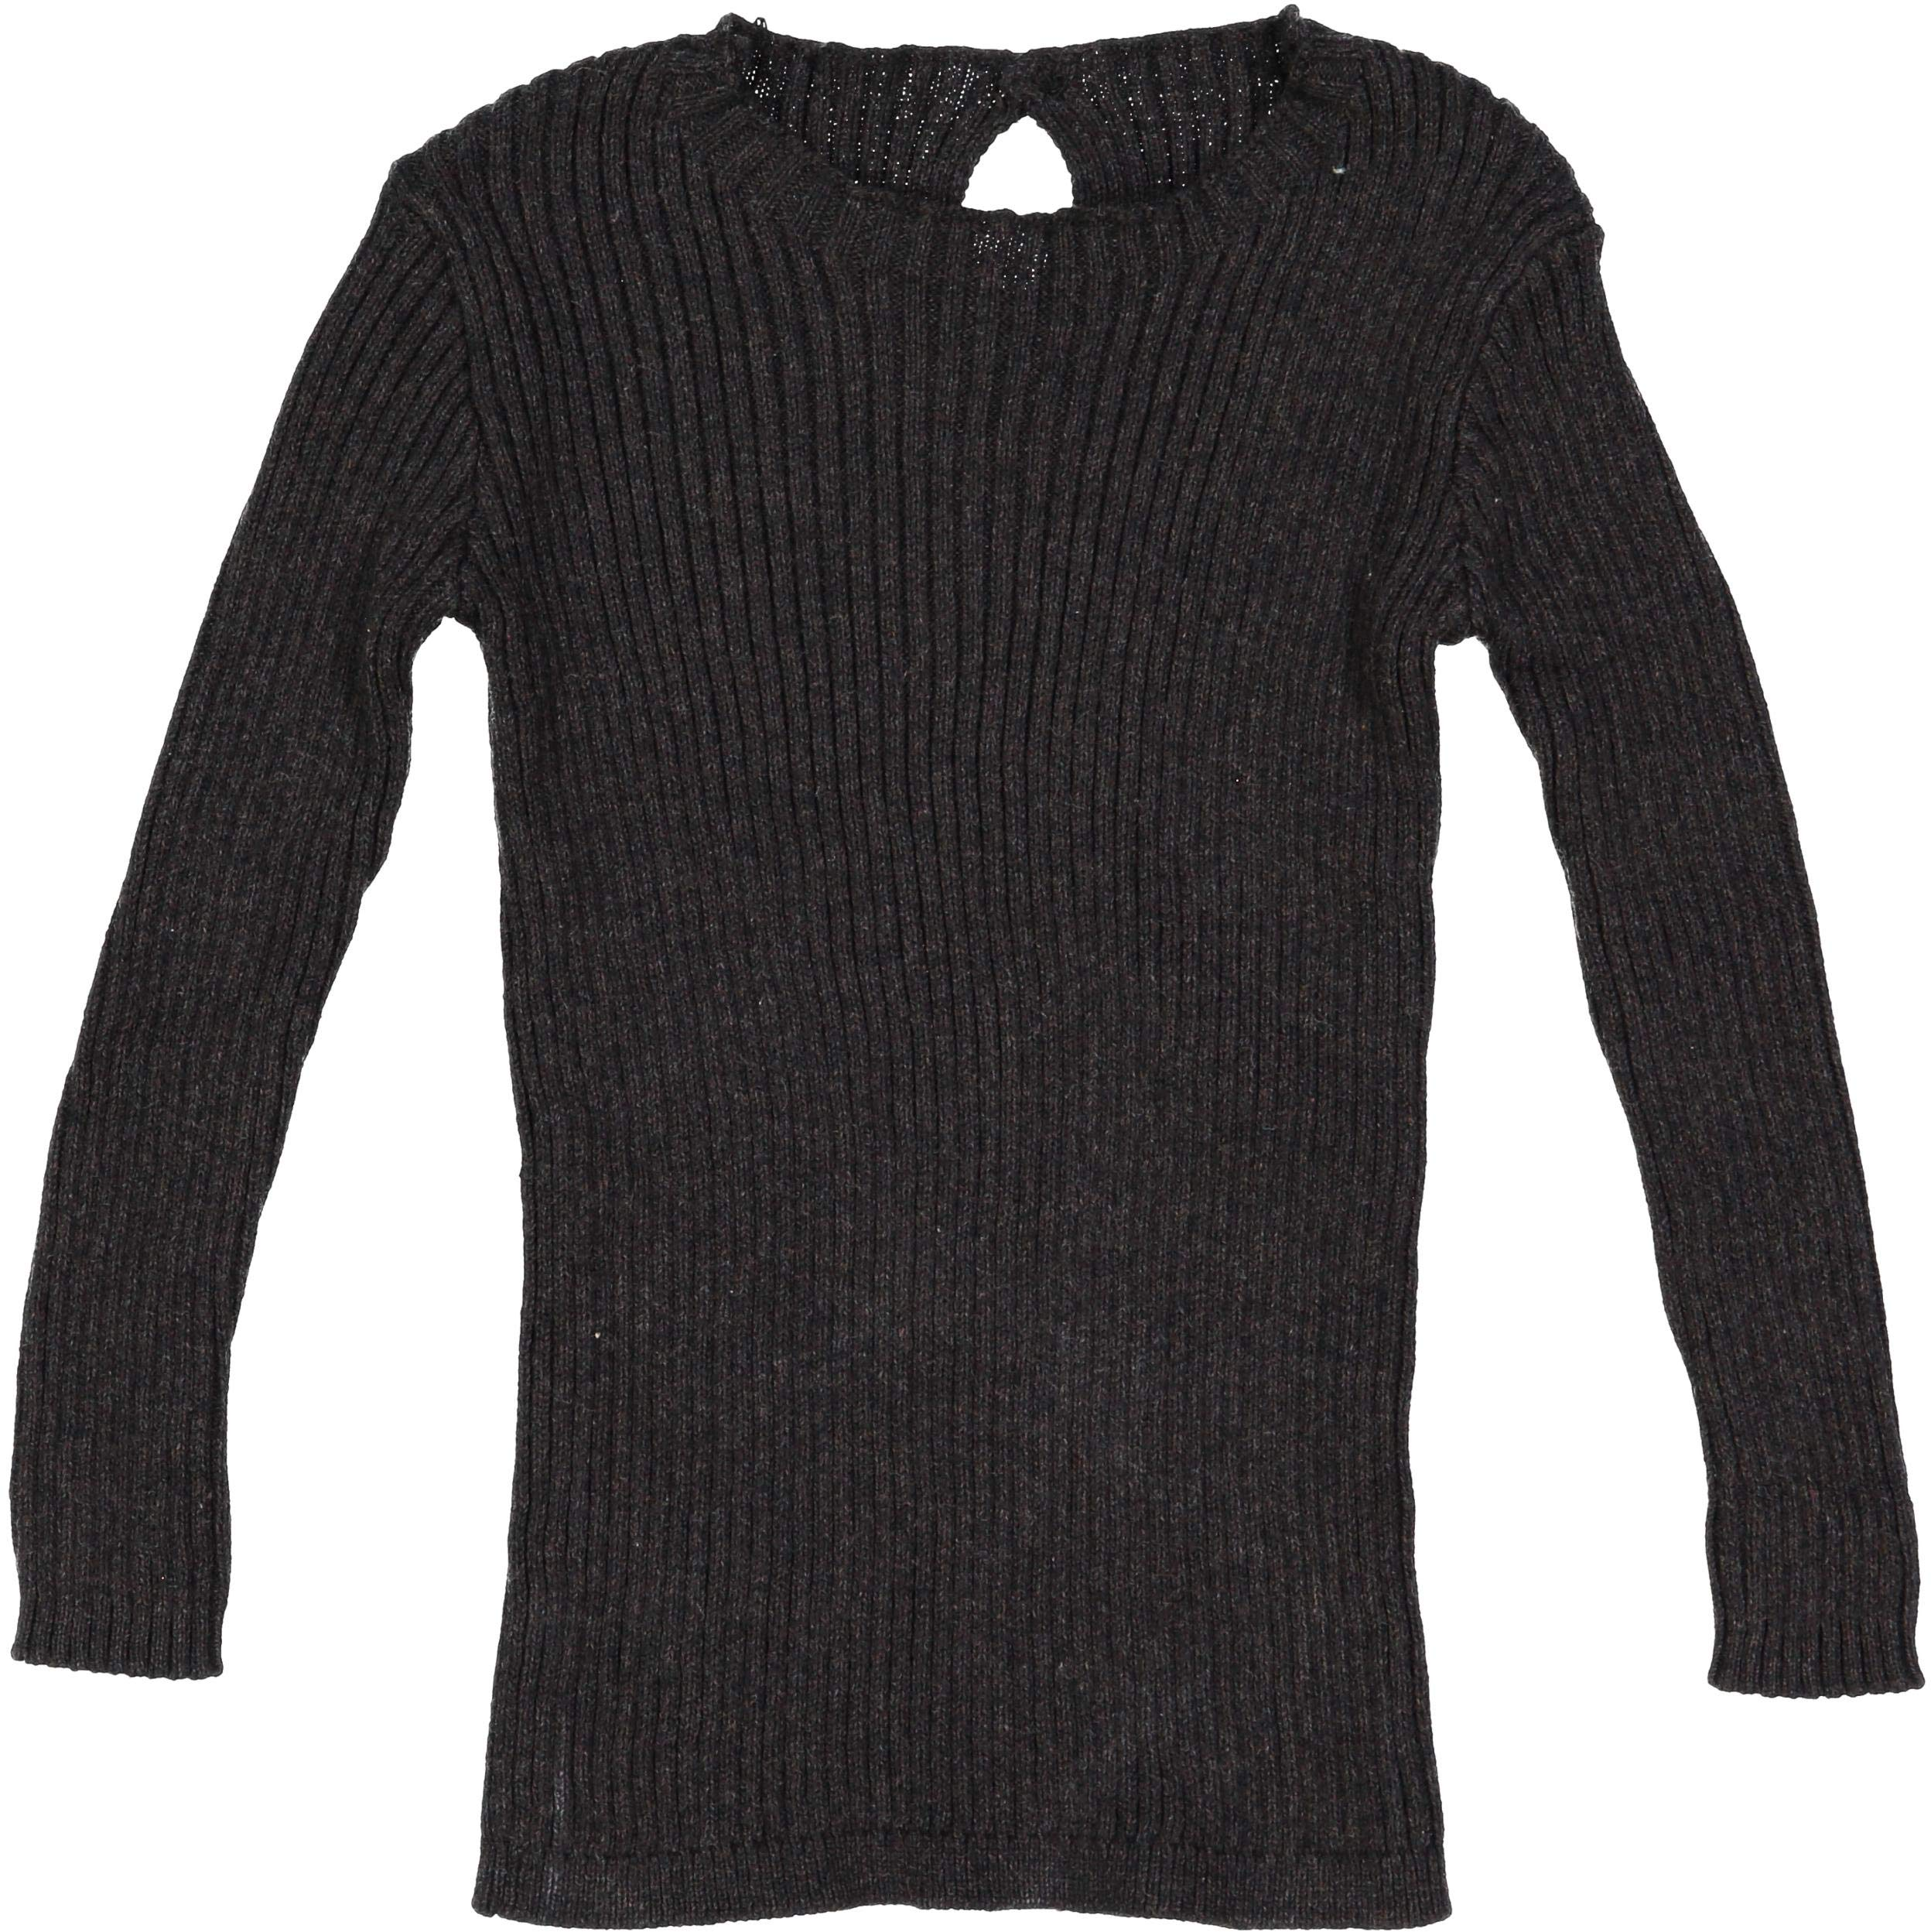 Analogie by Lil Legs Baby Boys Girls Unisex Winter Ribbed Knit Long Sleeve T-Shirt Sweater - Marled Black, 6 Months by Analogie by Lil Legs